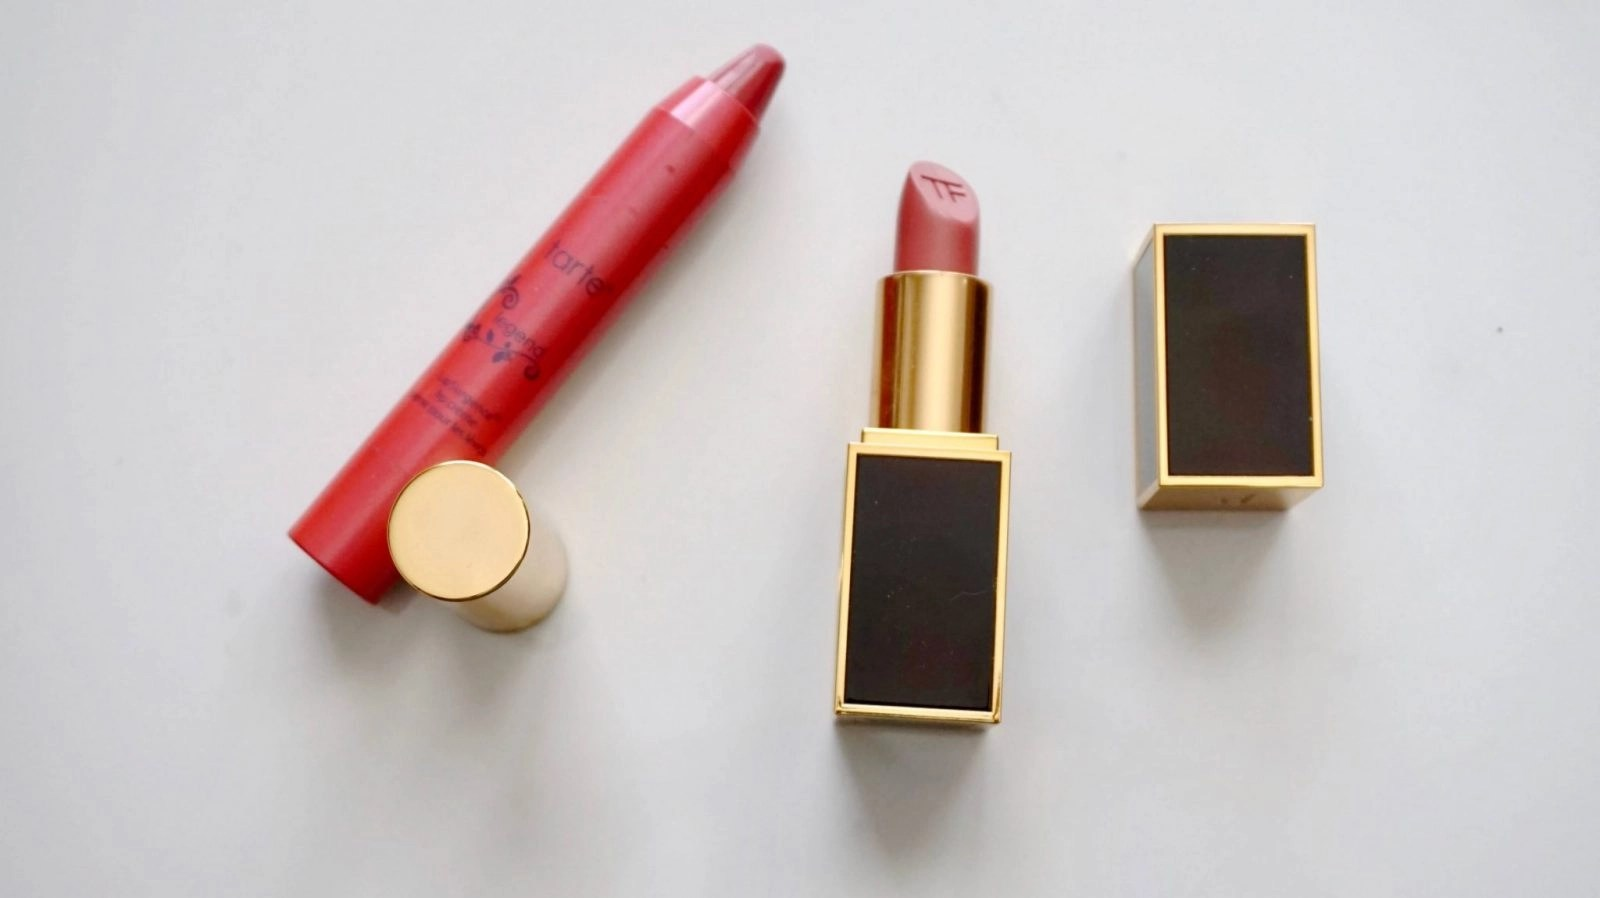 Tarte and Tom Ford Lip Products Opened